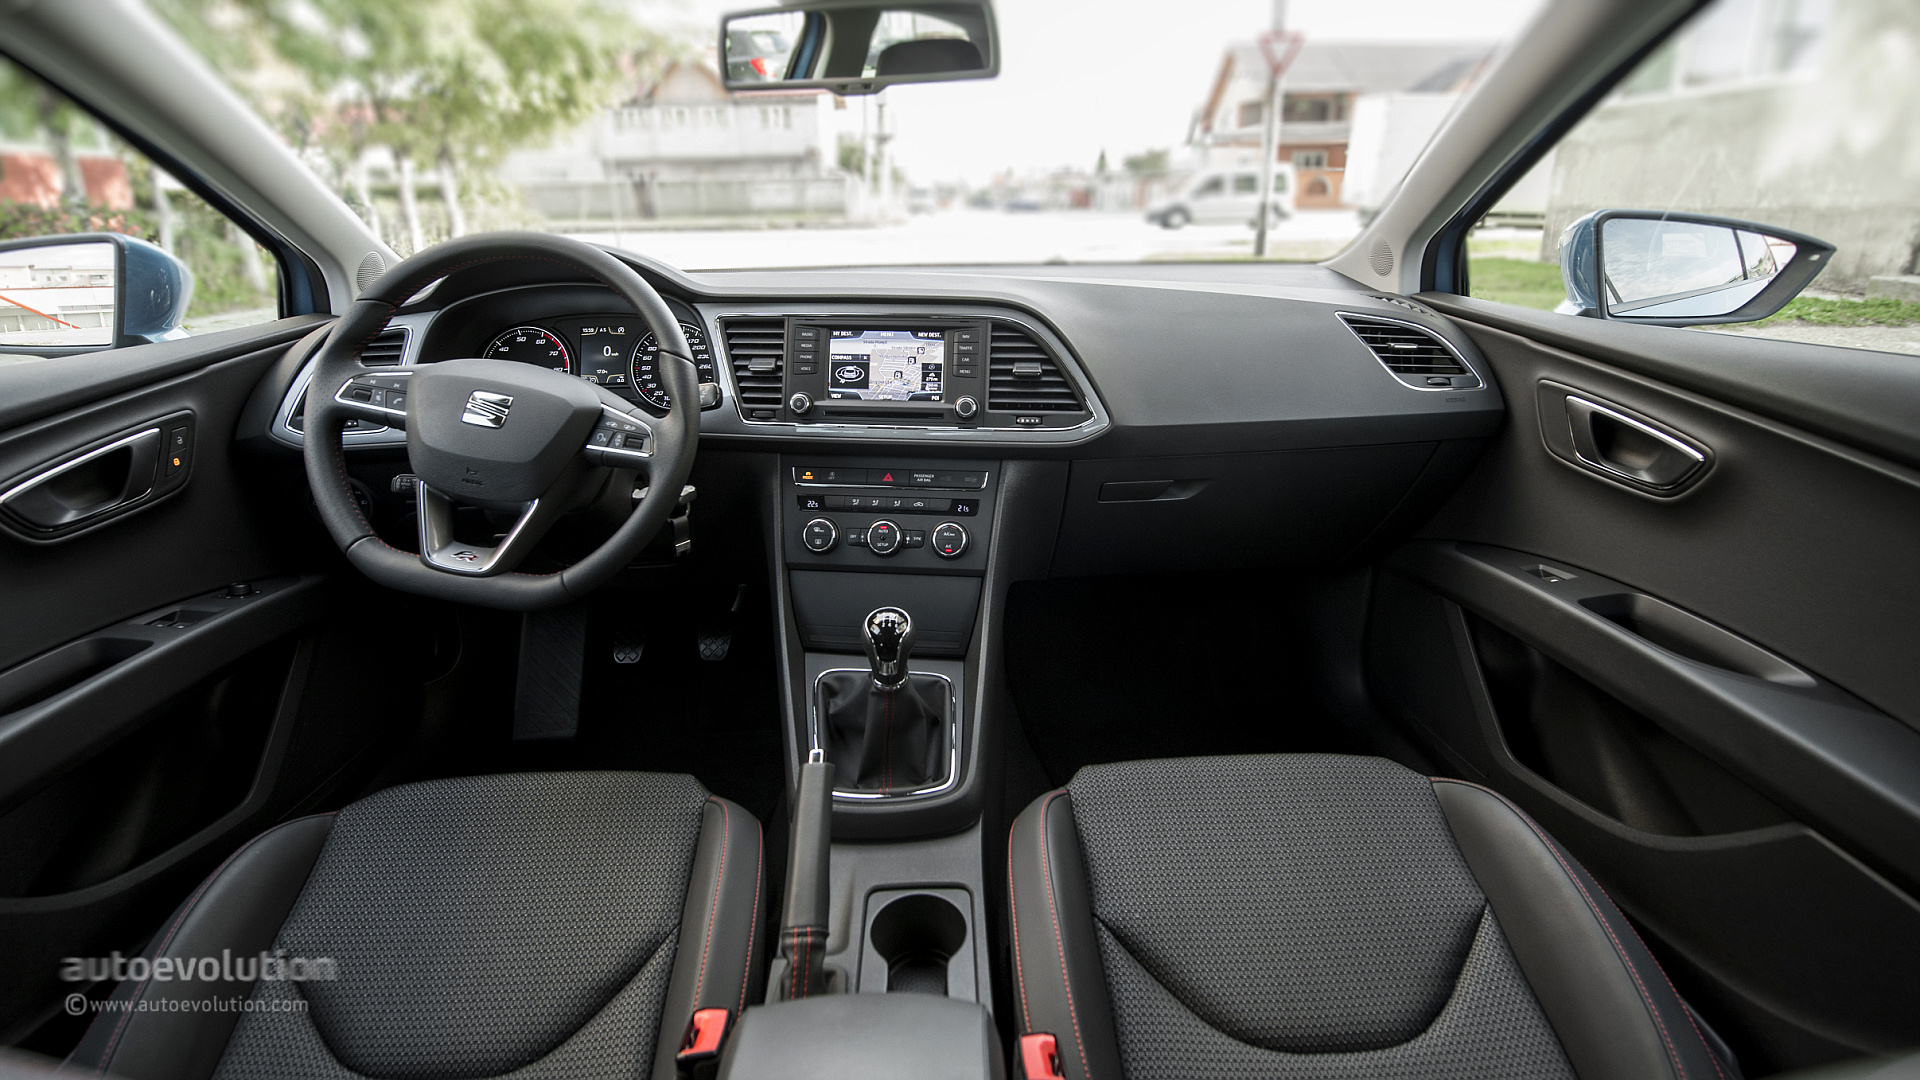 Seat leon sc review autoevolution for Interieur seat ibiza cupra